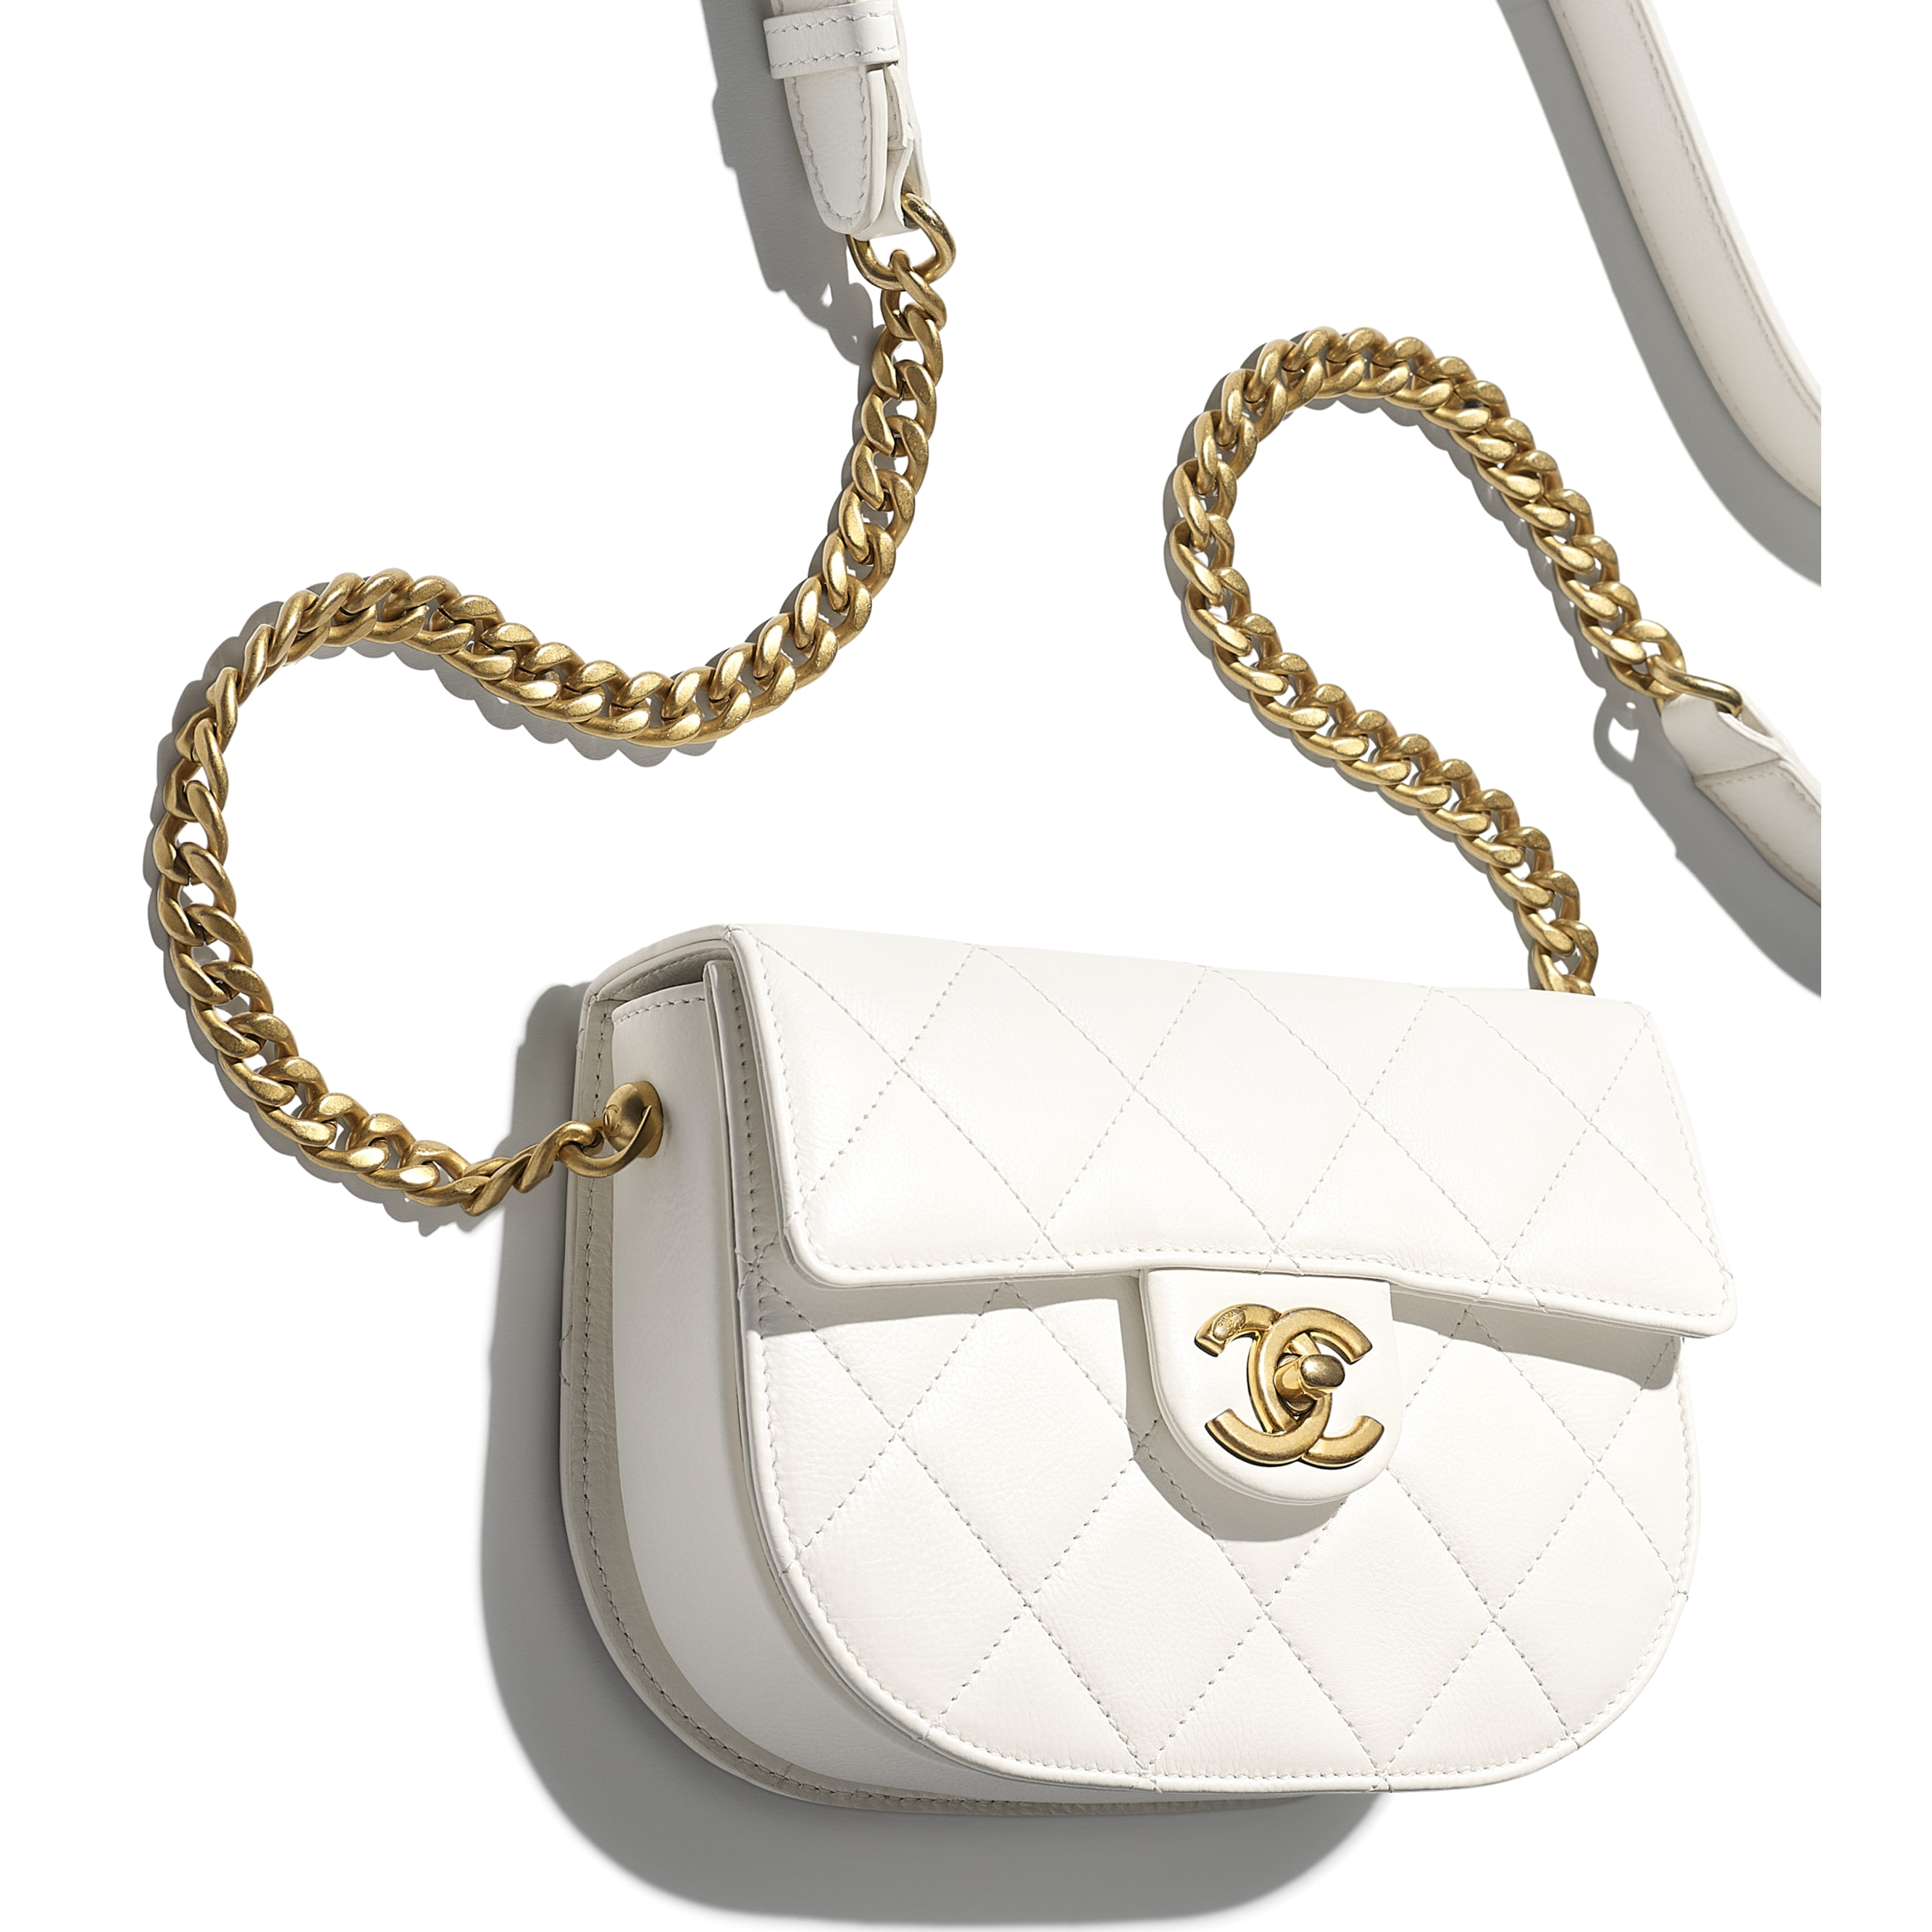 Mini Messenger Bag - White - Calfskin & Gold-Tone Metal - CHANEL - Extra view - see standard sized version